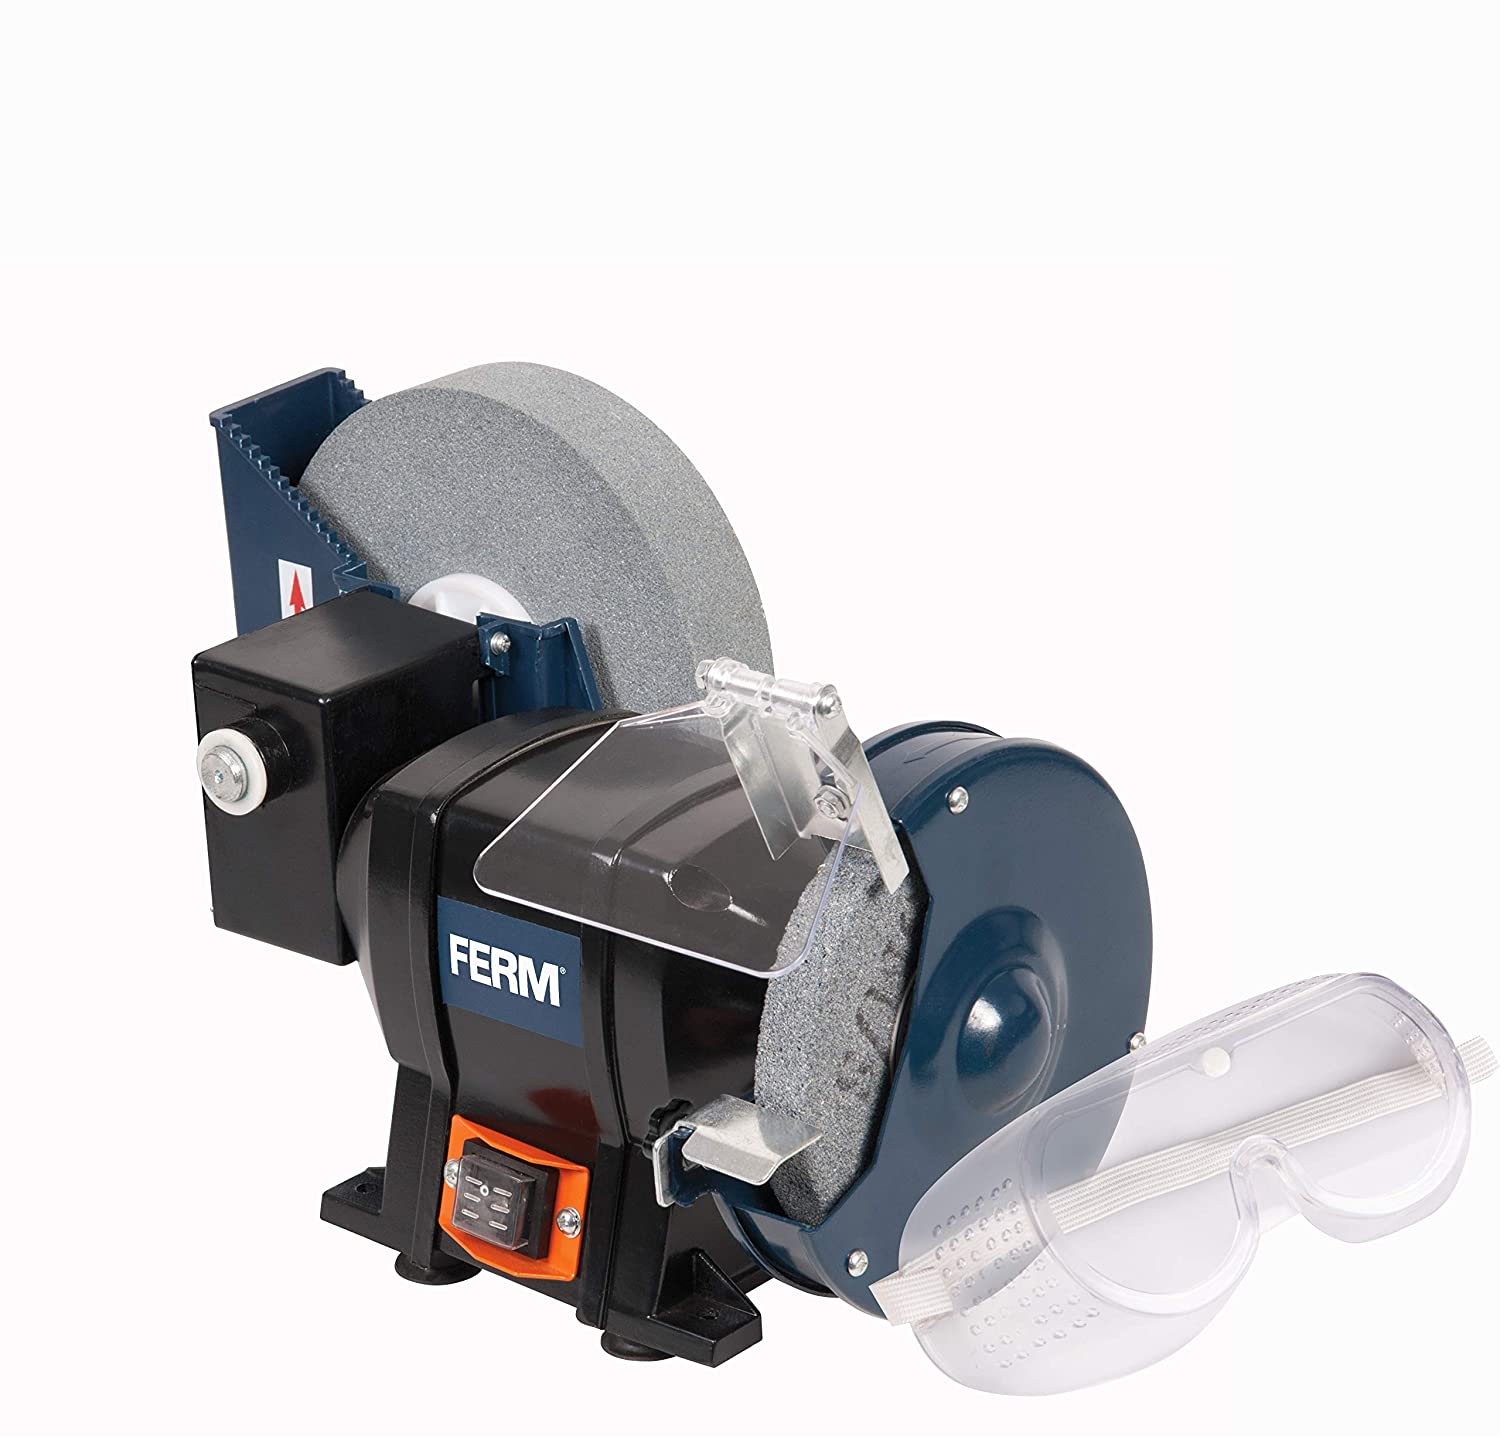 Remarkable Ferm Bgm1021 Wet And Dry Bench Grinder 250 Watt 2950 Rpm Caraccident5 Cool Chair Designs And Ideas Caraccident5Info